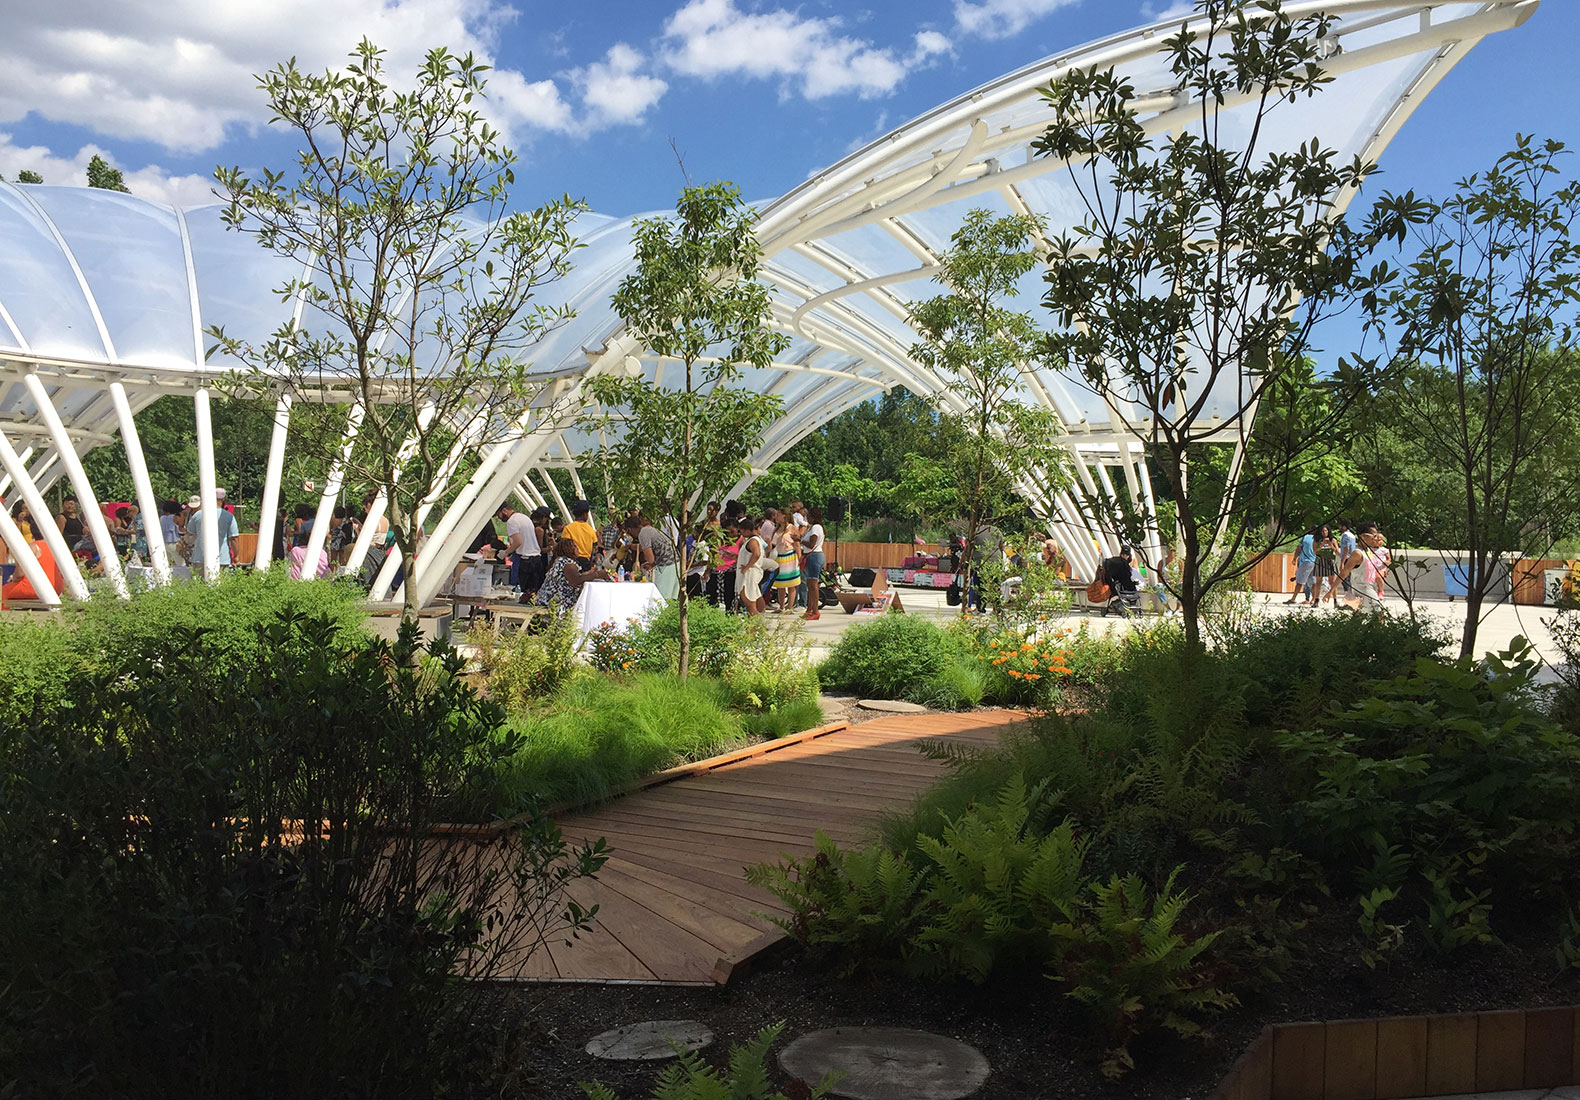 The Brooklyn Childrens Museums New Green Roof Lets Kids Explore Wilderness In Middle Of City